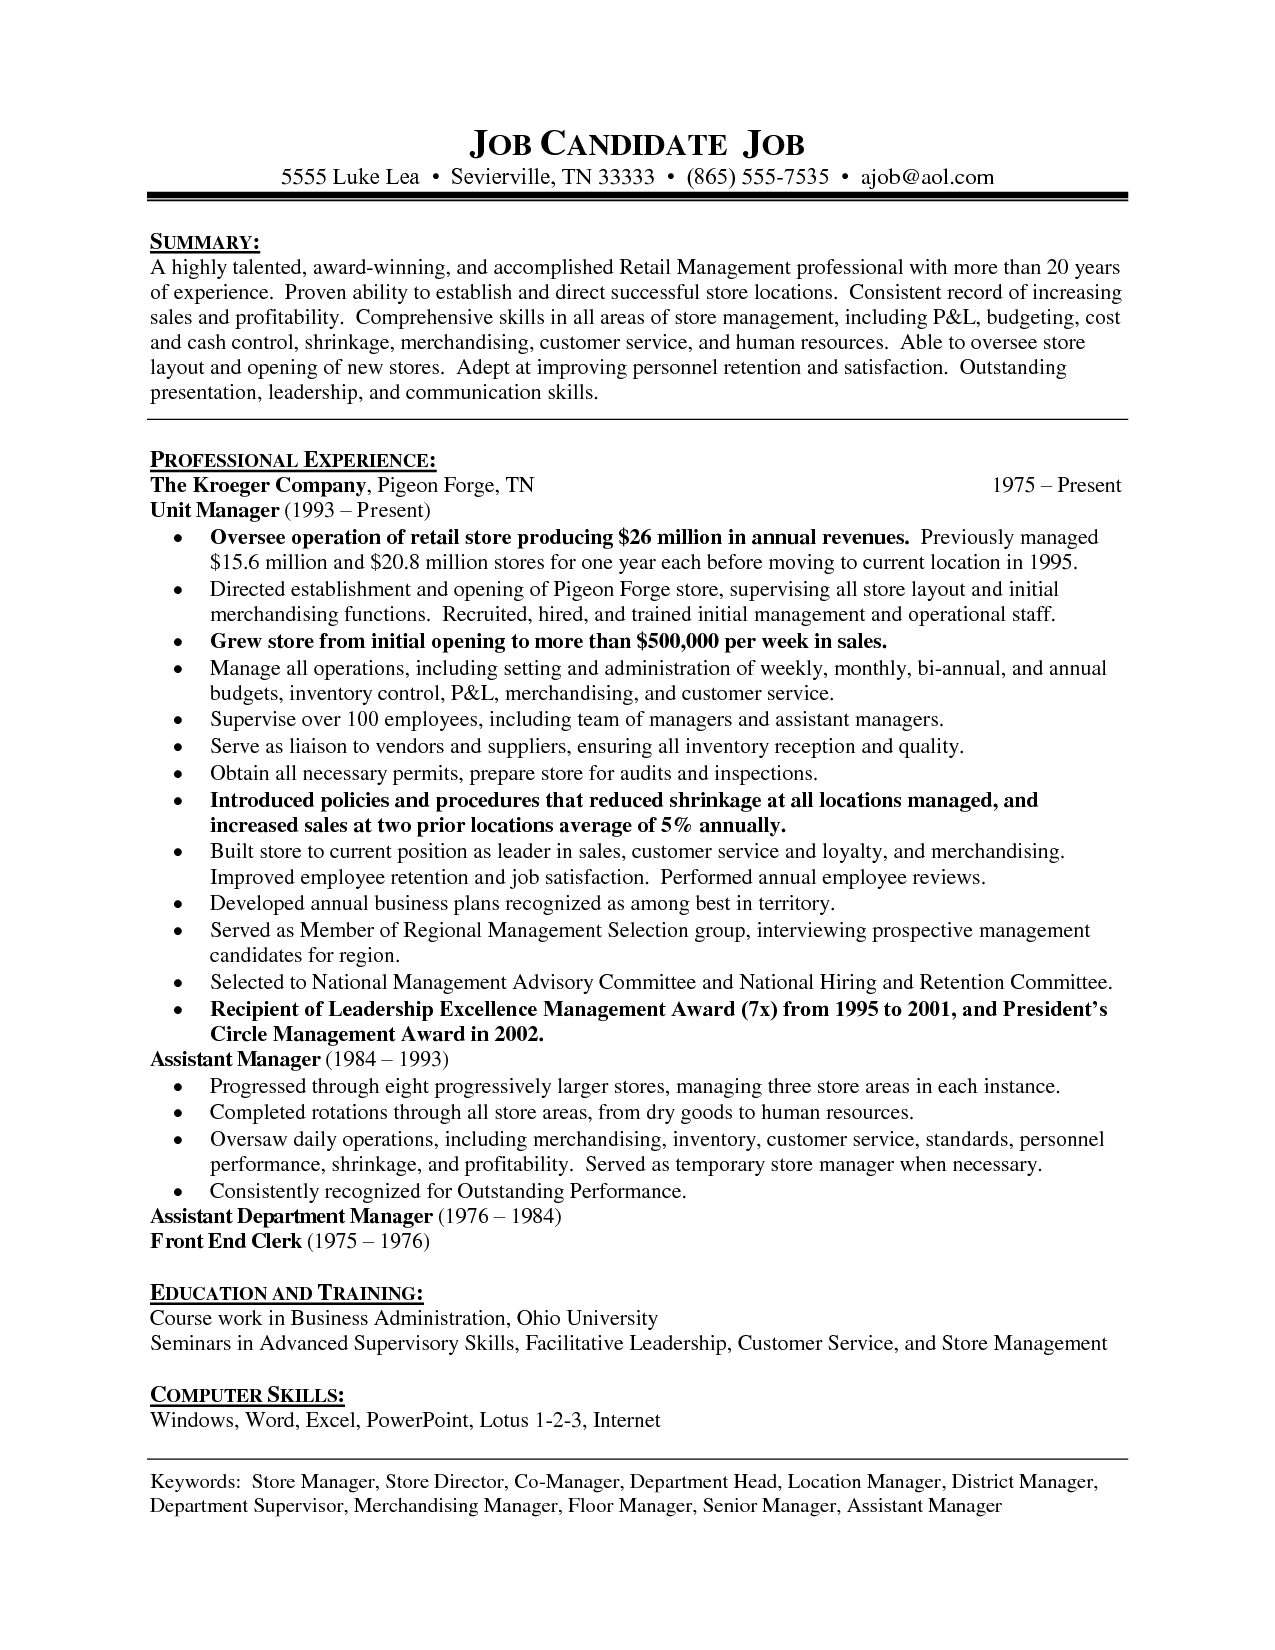 Draftsman Sample Resumes Retail Department Store Manager Resume  Vision Specialist  Good .